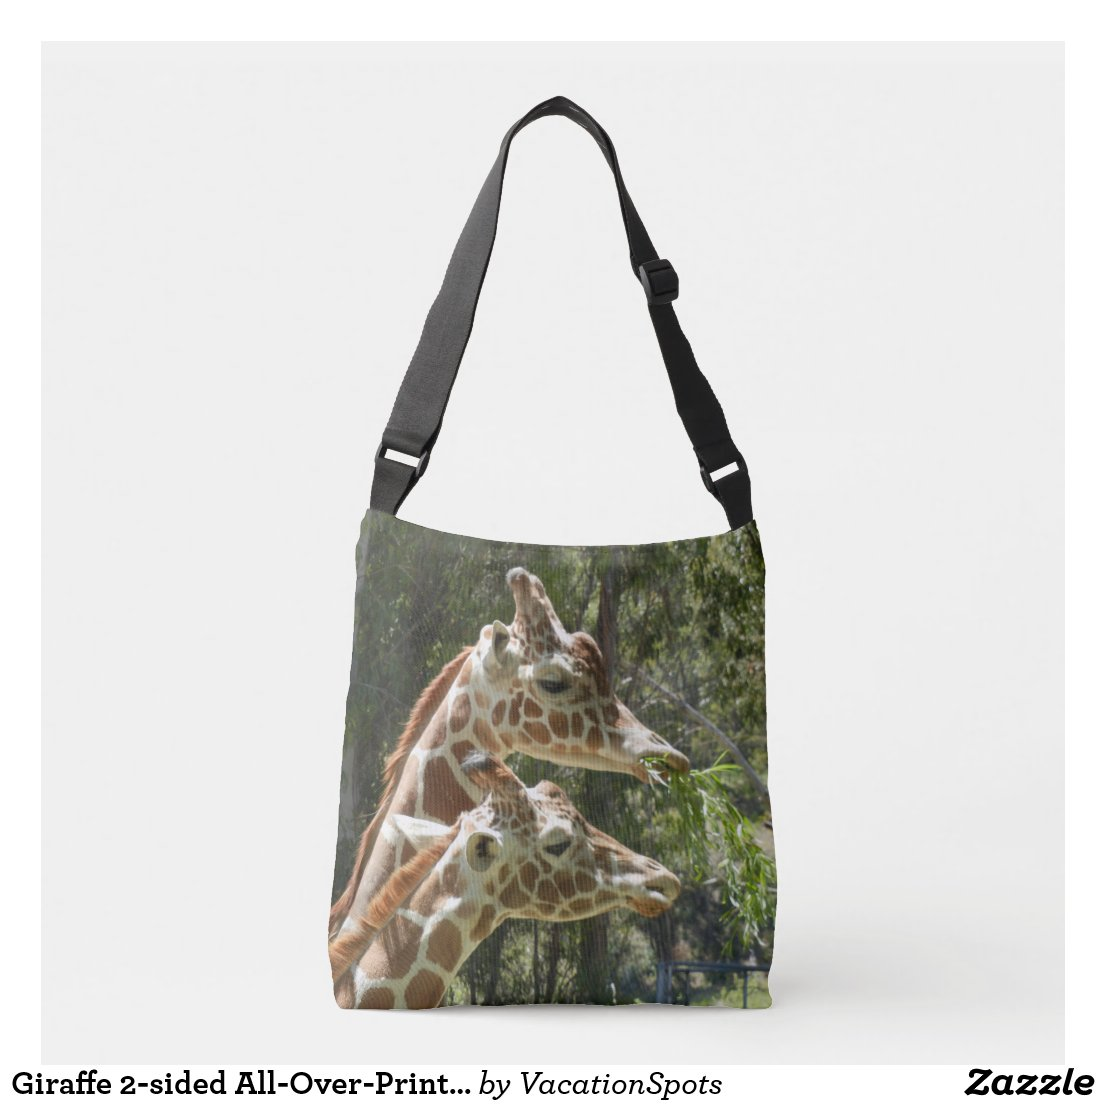 Giraffe 2-sided All-Over-Print Cross Body Bag